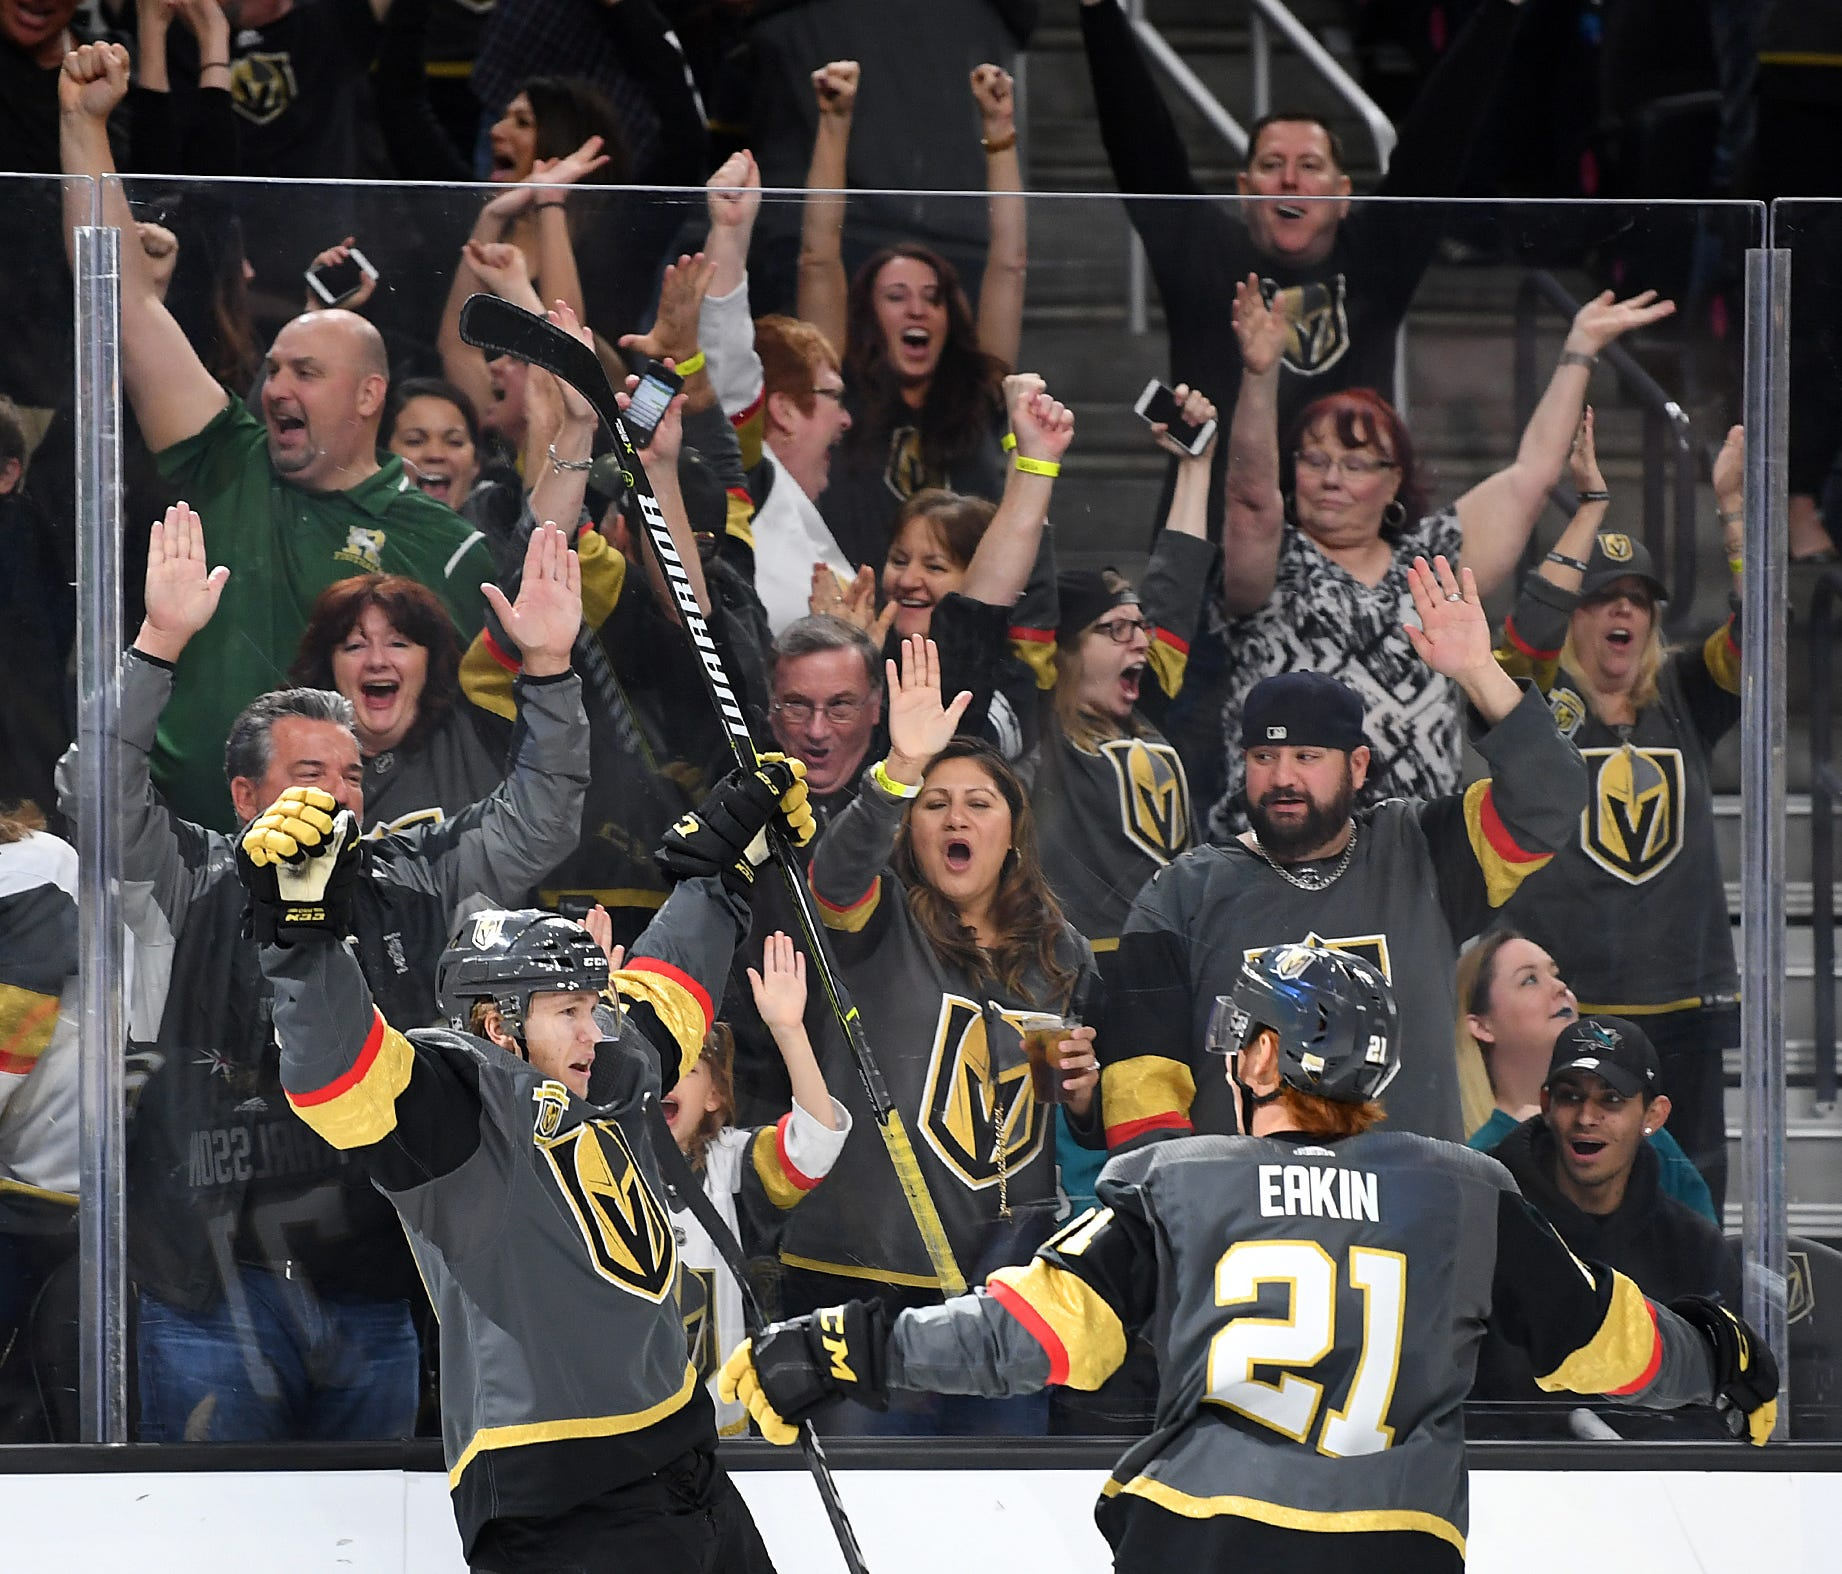 Vegas Golden Knights center William Karlsson (71) celebrates with center Cody Eakin (21) after scoring a third-period goal against the San Jose Sharks in the second round of the playoffs.